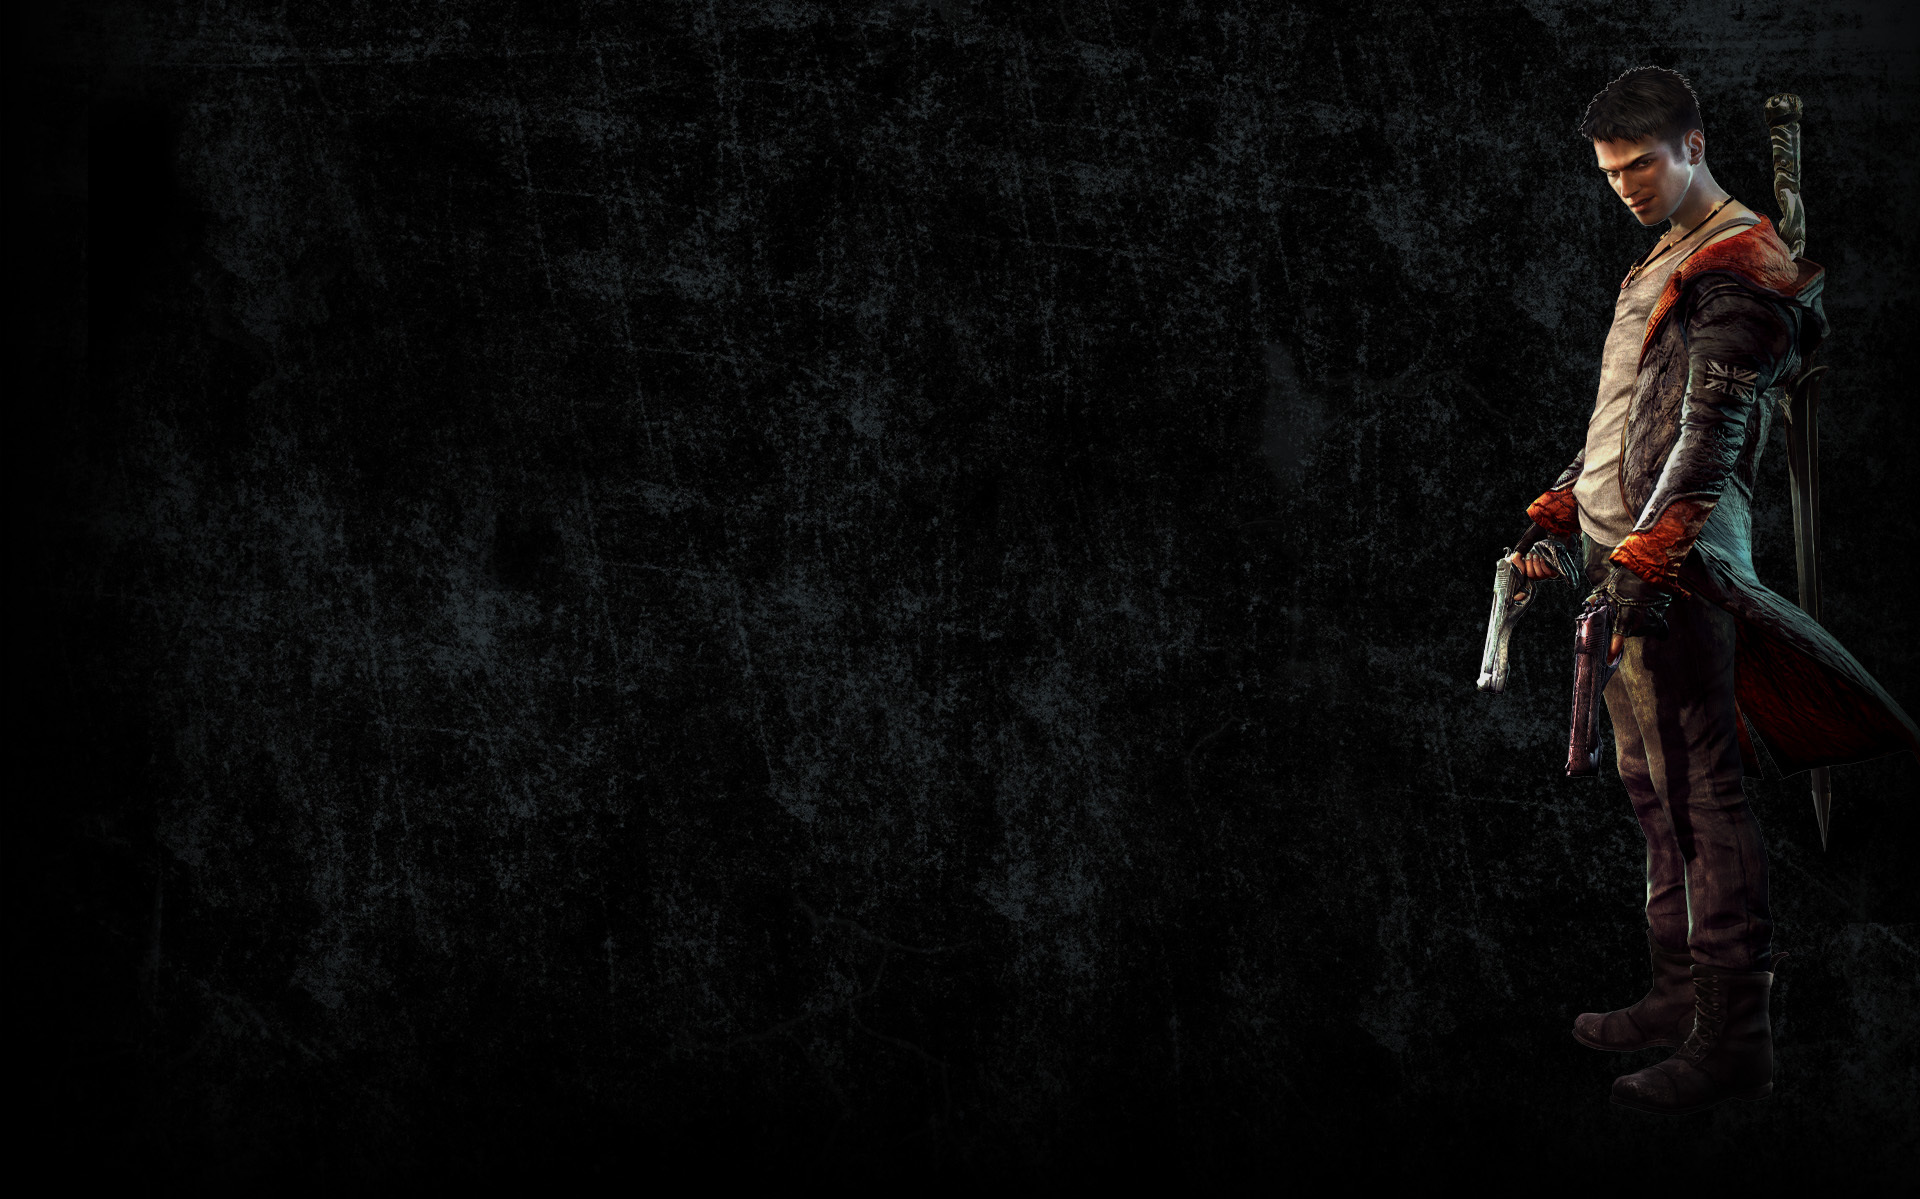 Image dmc devil may cry background dante the demon killerg dmc devil may cry background dante the demon killerg voltagebd Images